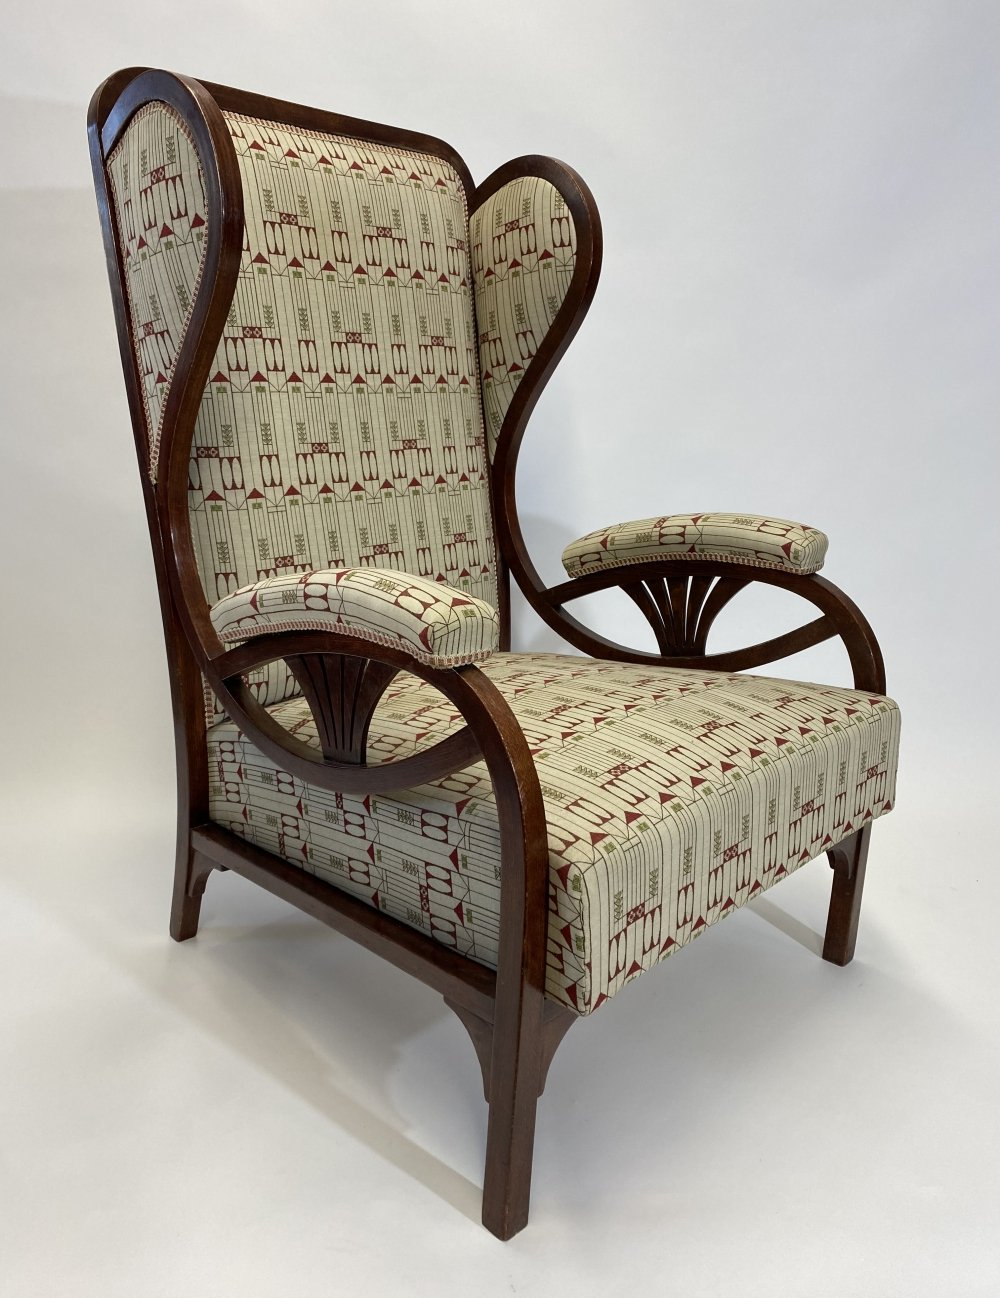 Large art nouveau wing chair no. 6542 by Thonet